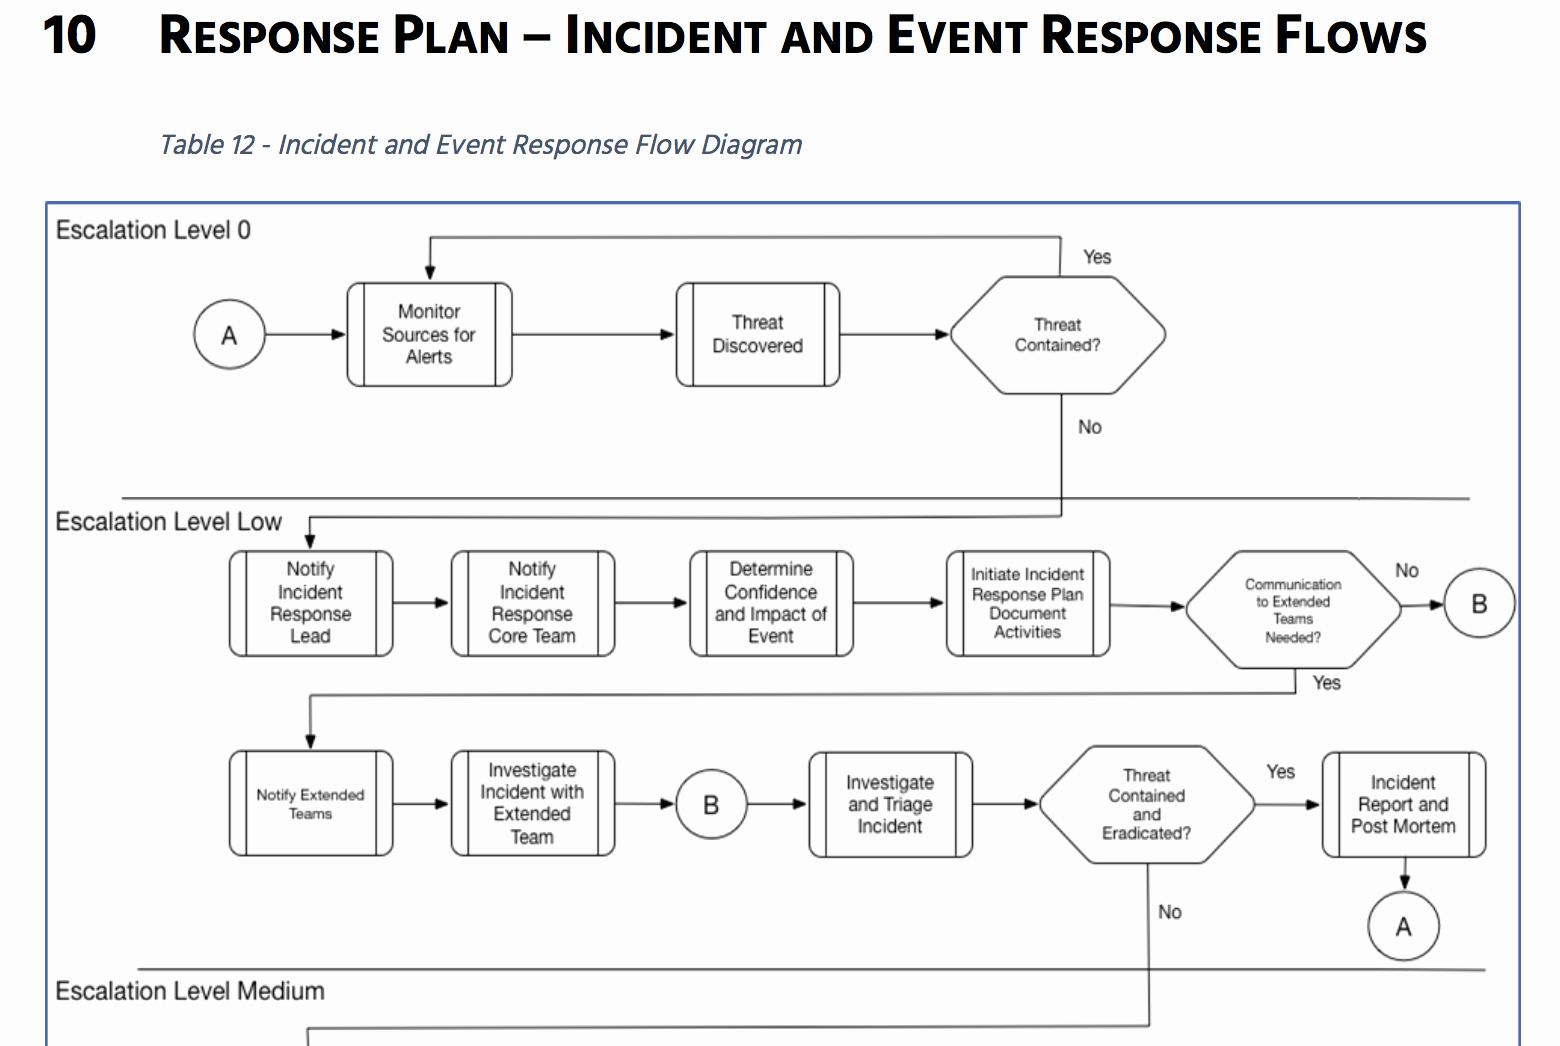 Incident Response Plan Template Nist Fresh Prepare for Battle Let's Build An Incident Response Plan